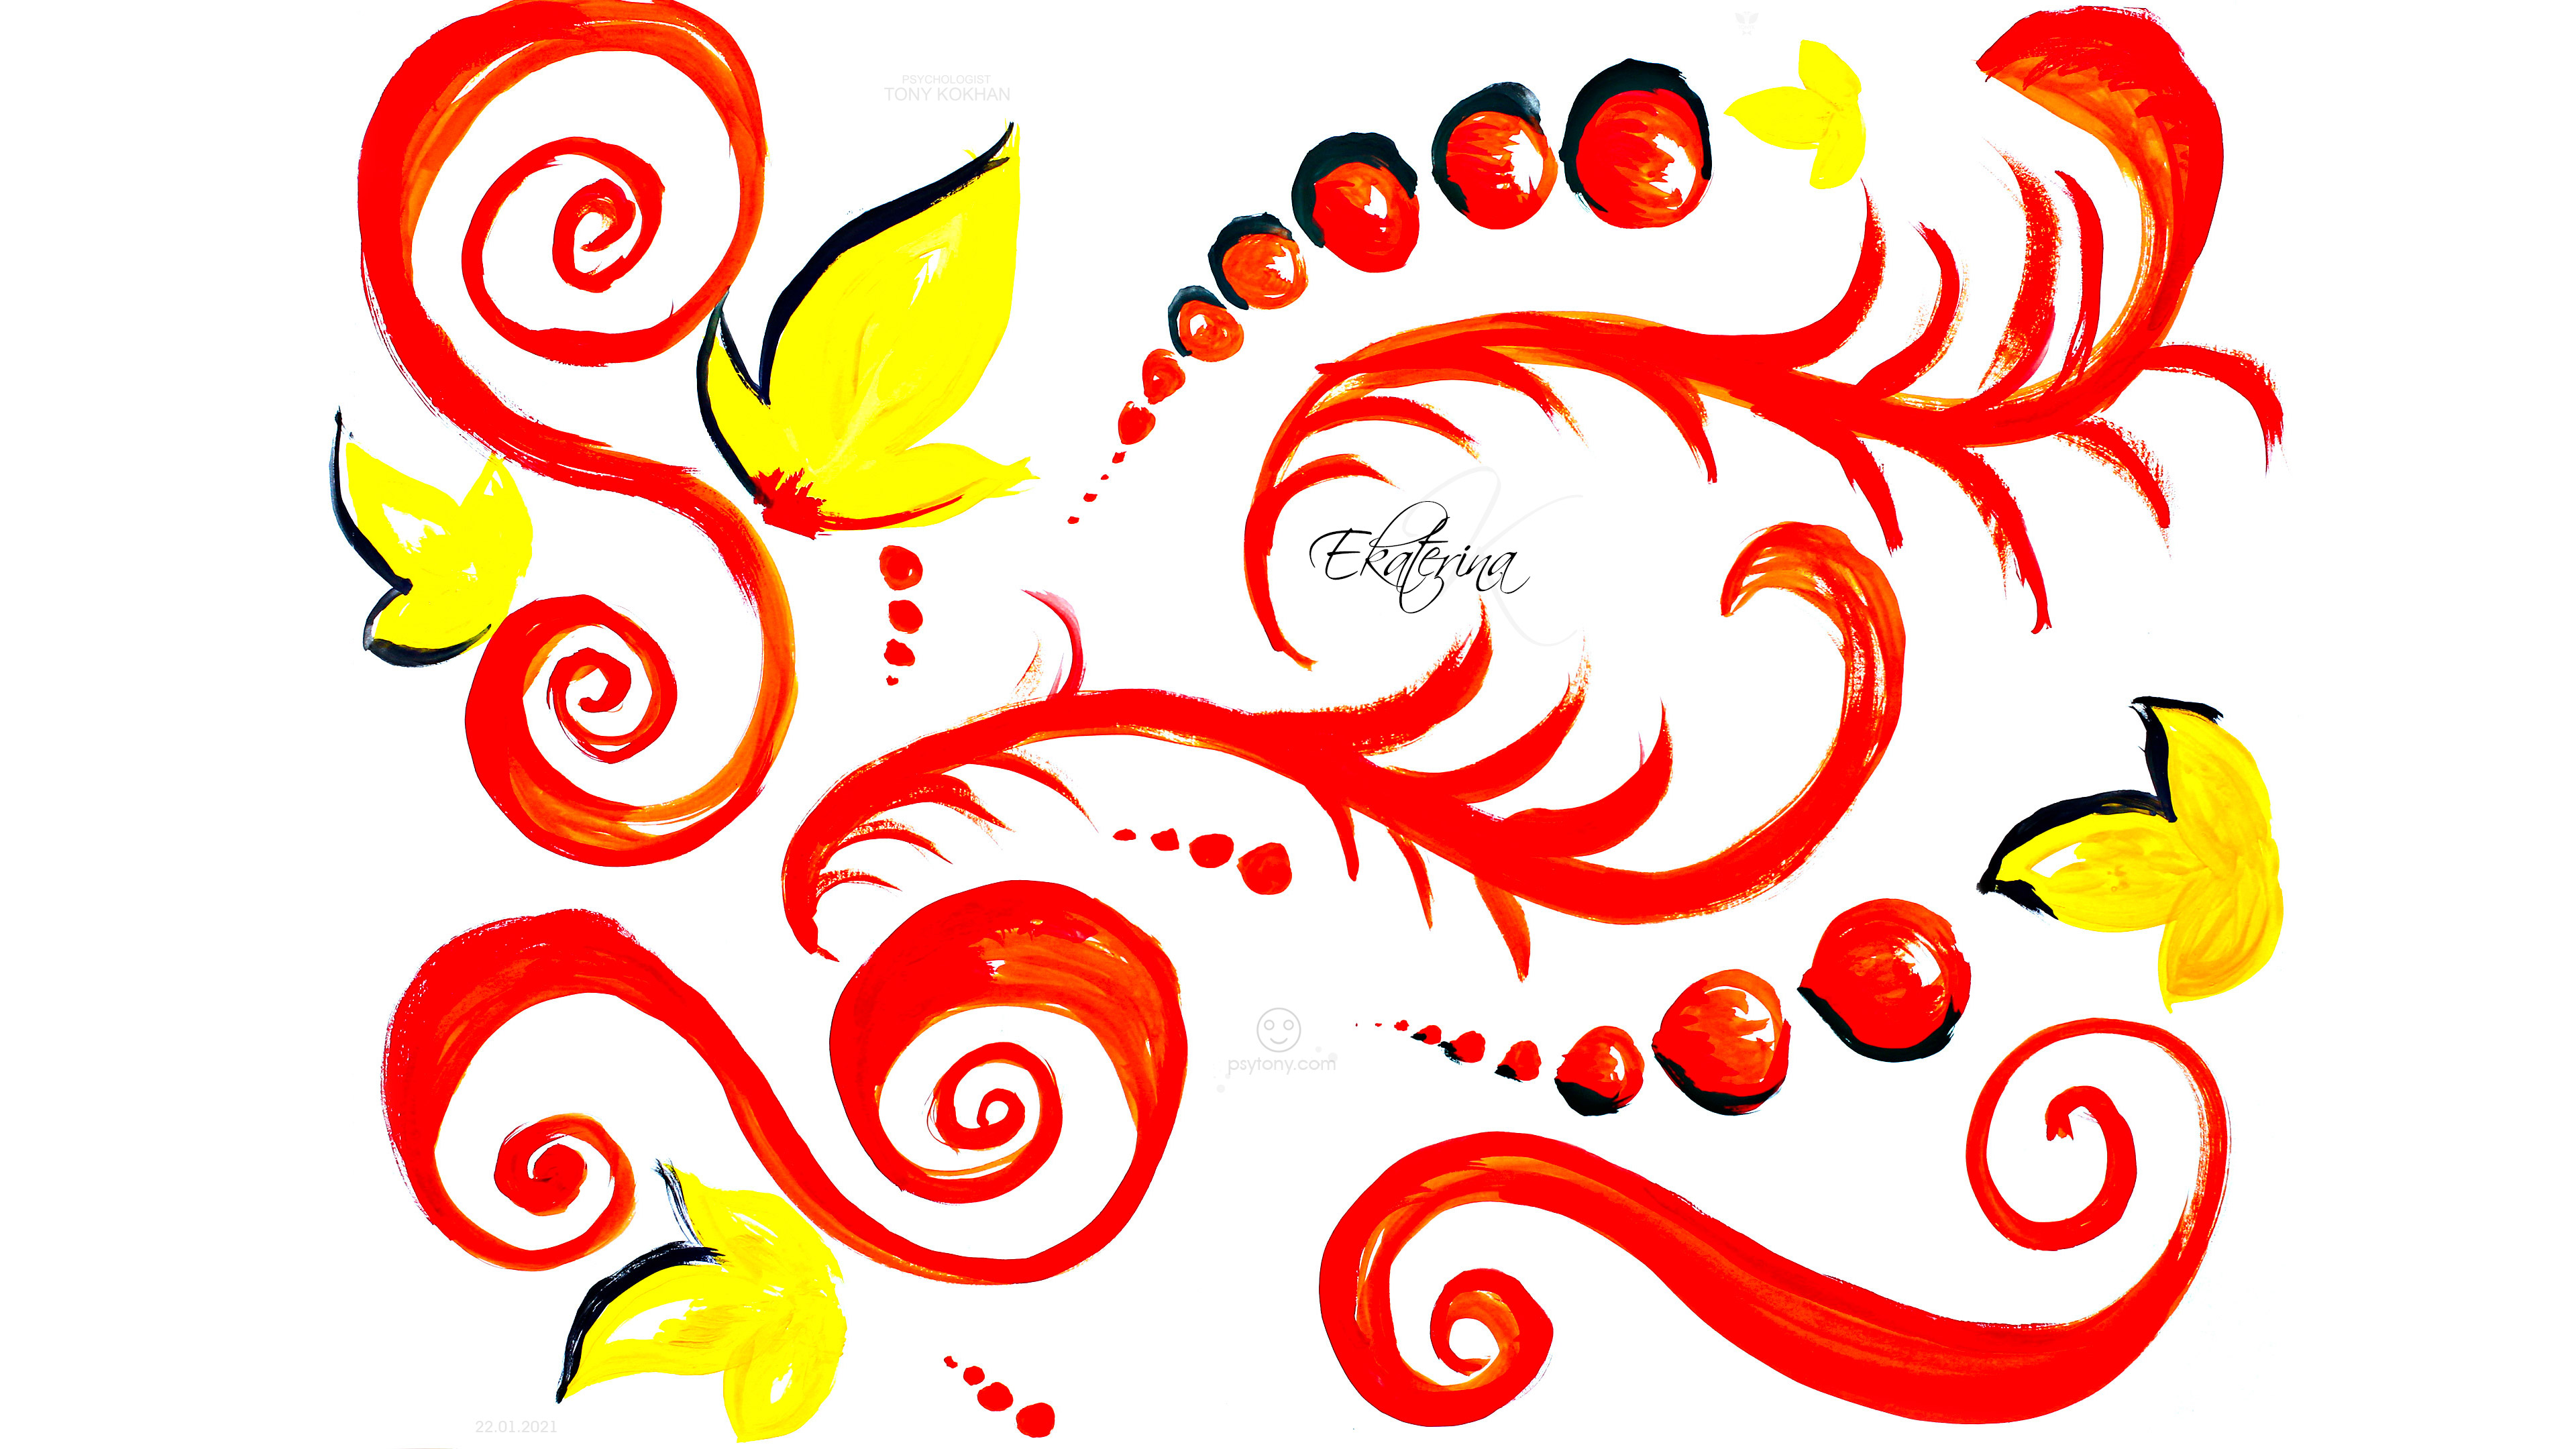 Ekaterina-Soul-Girl-Curls-Leaves-Circles-Undivine-Fire-Autumn-Energy-Gouache-Picture-Art-2021-Multicolors-4K-Wallpapers-by-Psychologist-Tony-Kokhan-www.psytony.com-image